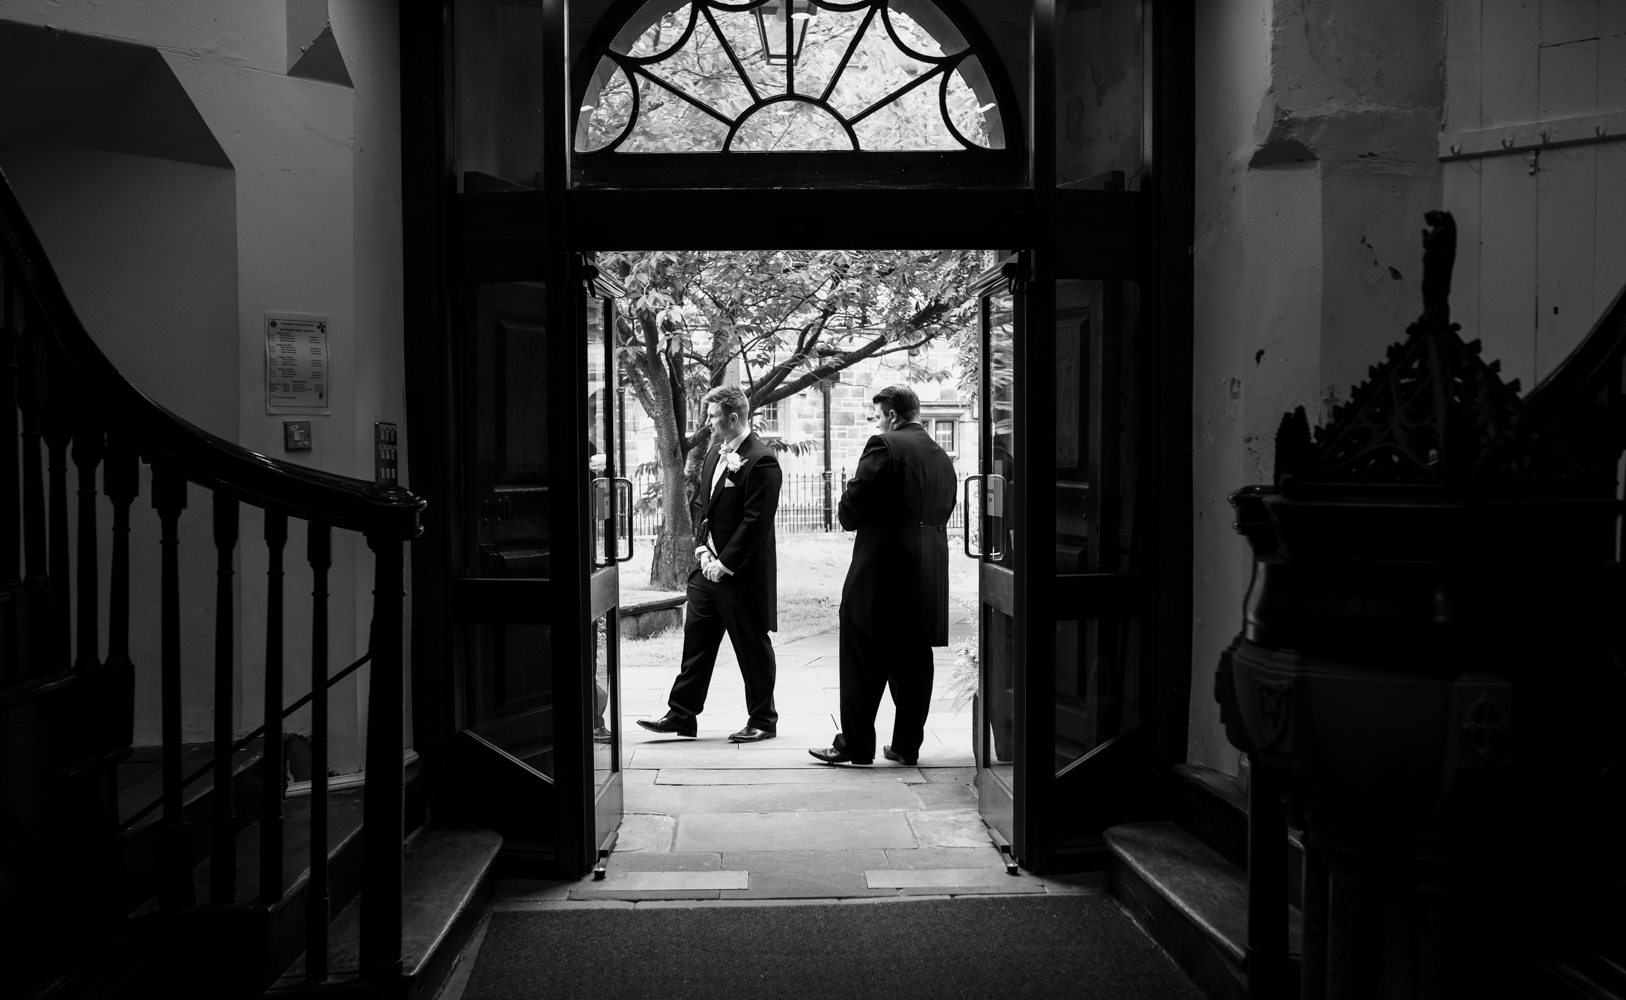 A black and white photo of the groom and his best man welcoming family and guests into the church before the ceremony